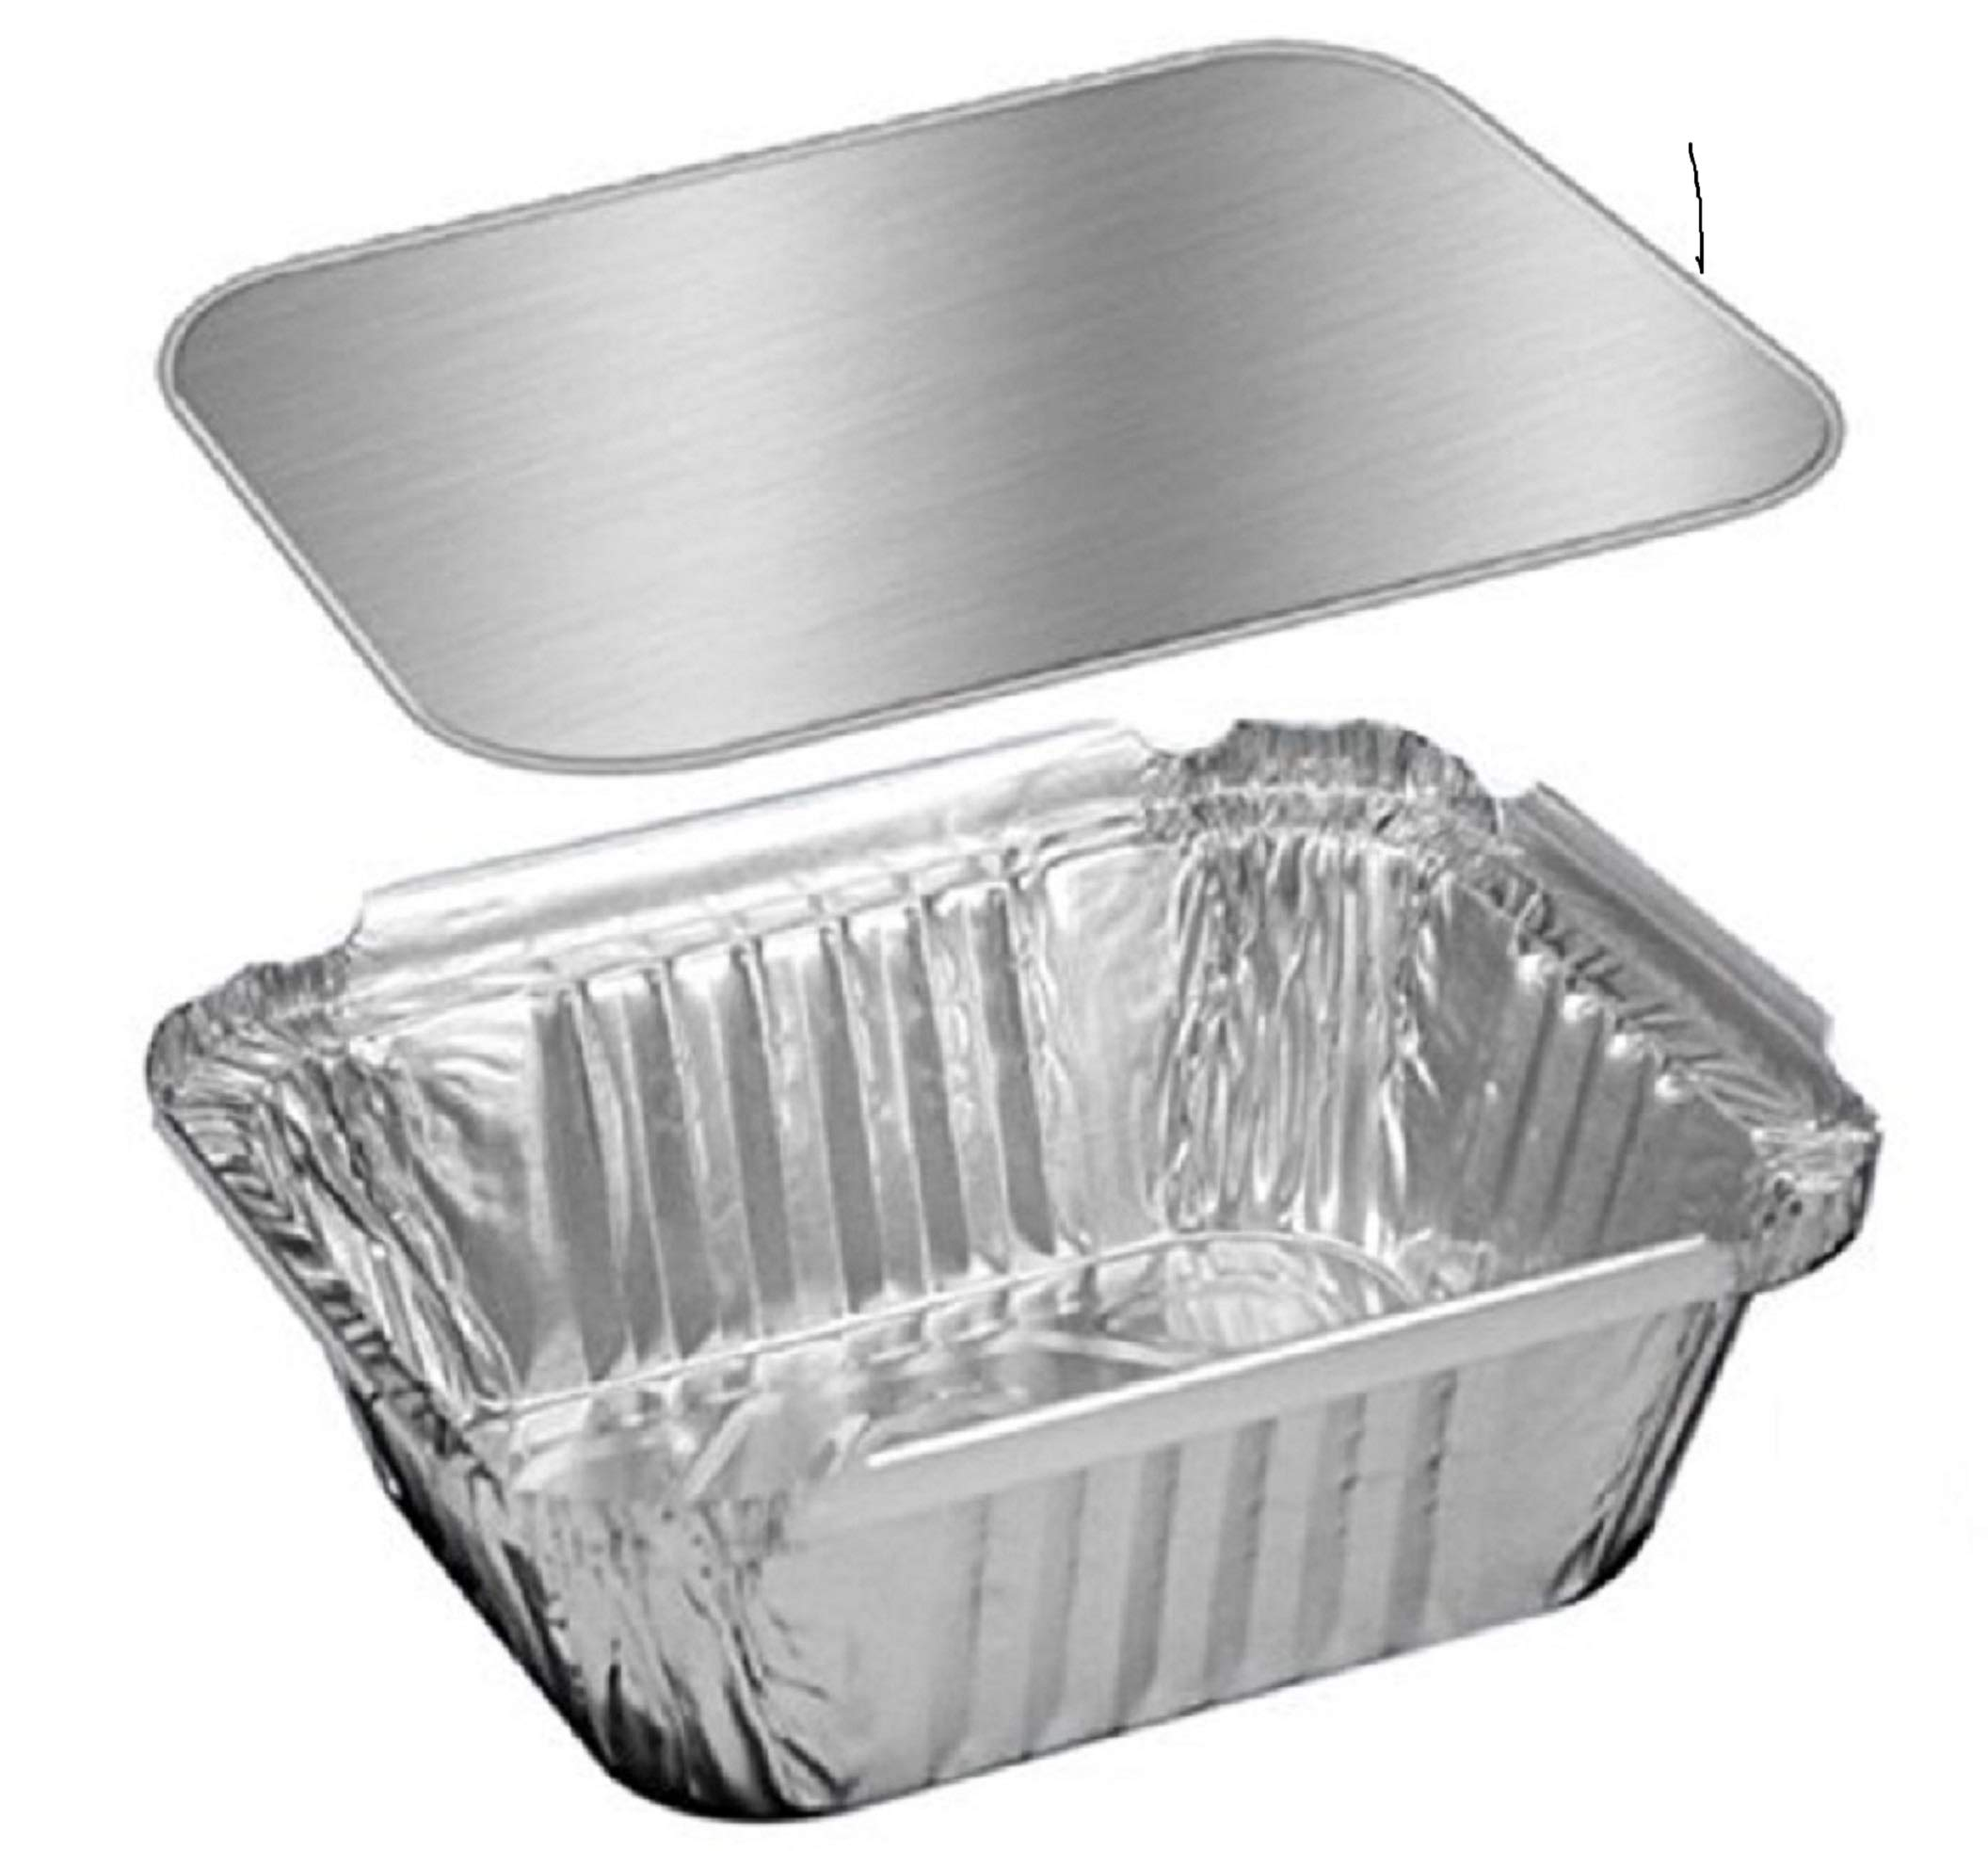 The Baker Celebrations Aluminum Foil Mini 1 lb Loaf Pan with Board Lid - 5 x 4 inch Disposable Takeout Food Containers - Made in USA (Pack of 50)